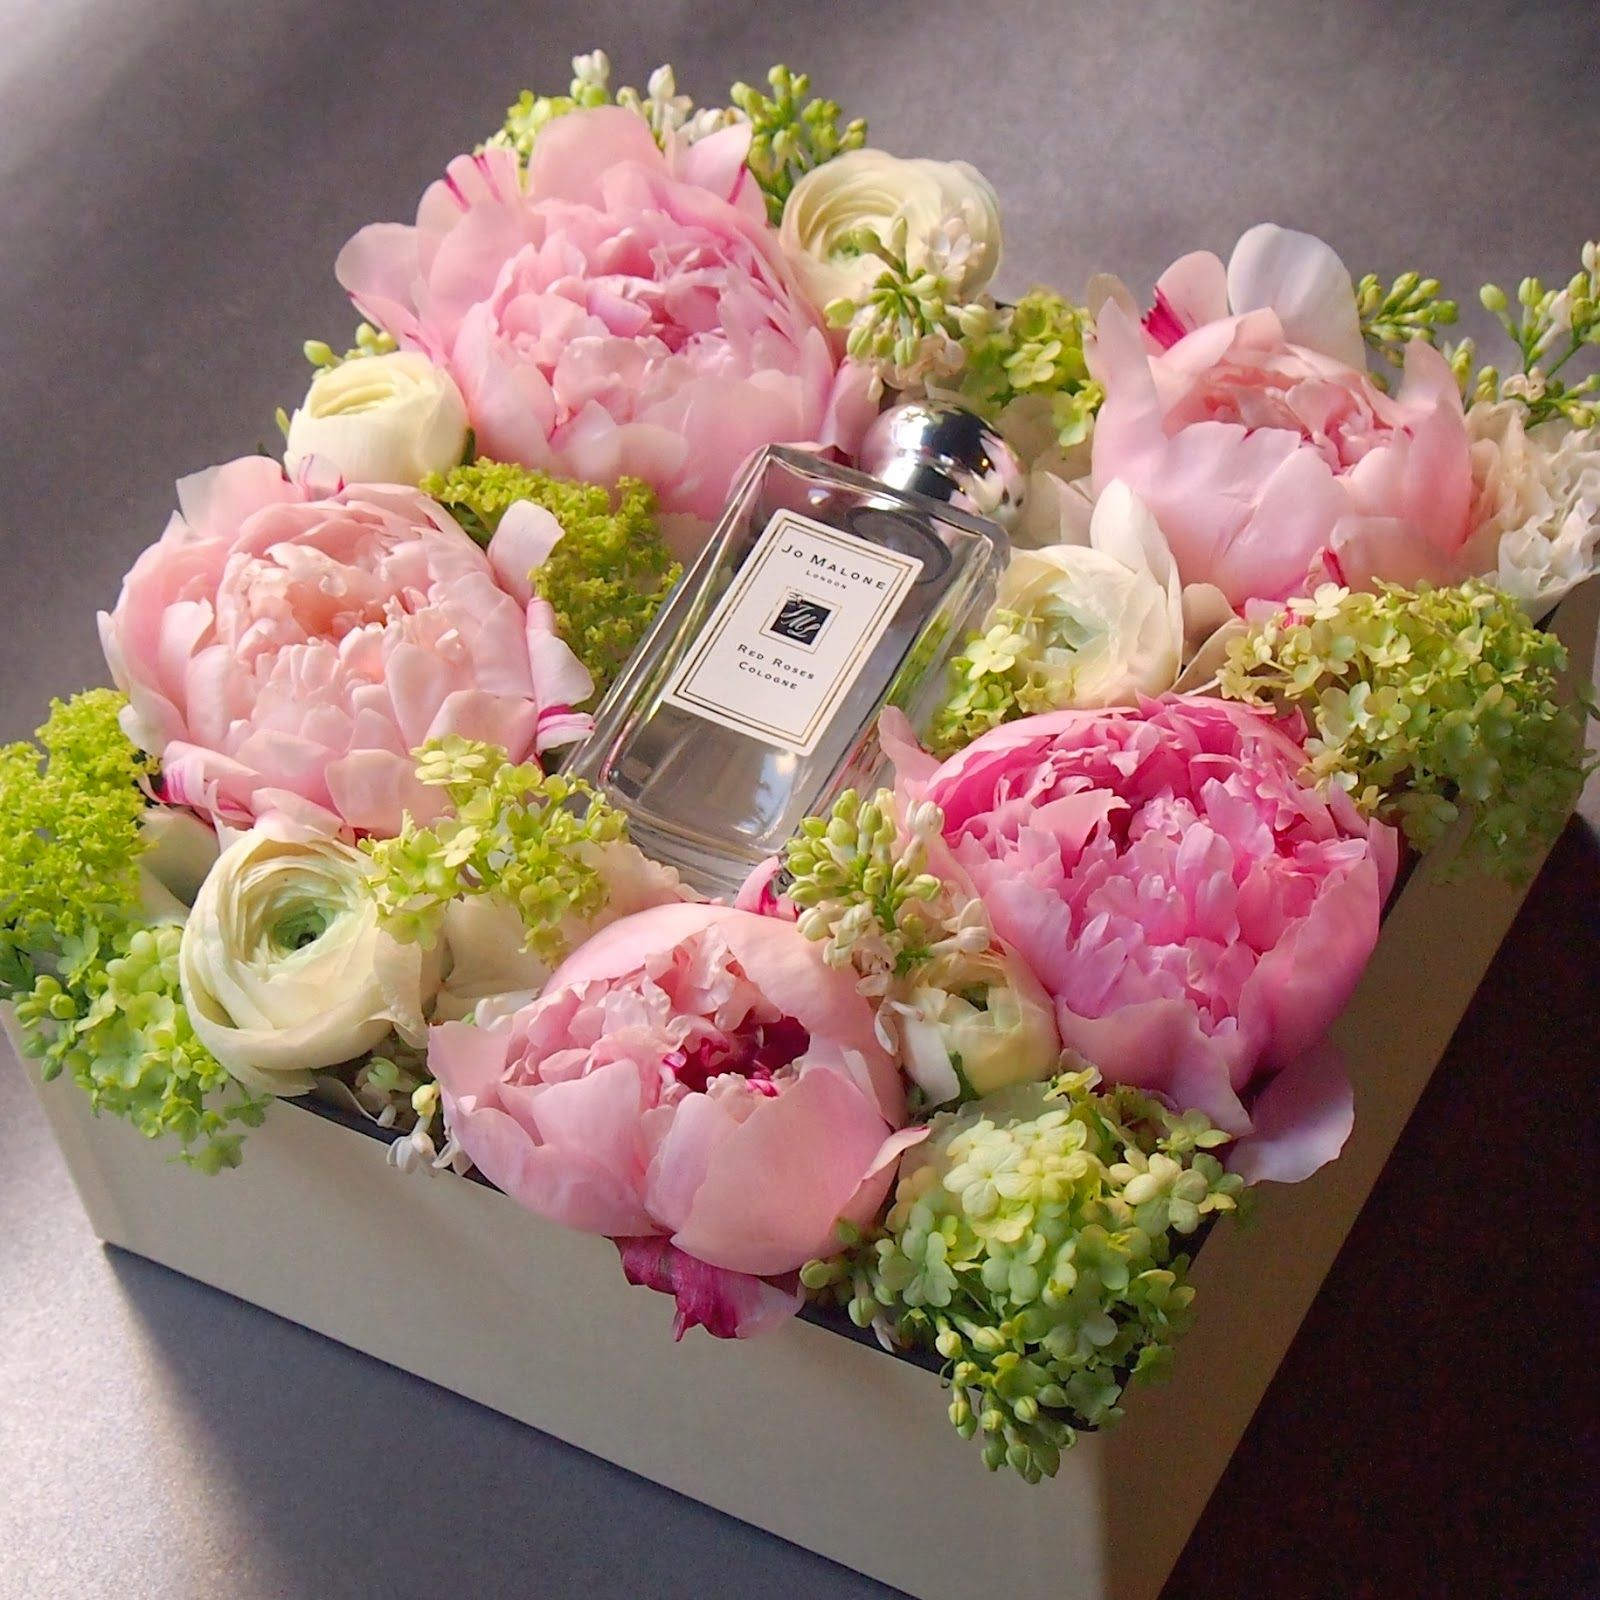 Flowers in a box Peony JoMalone Flower box gift